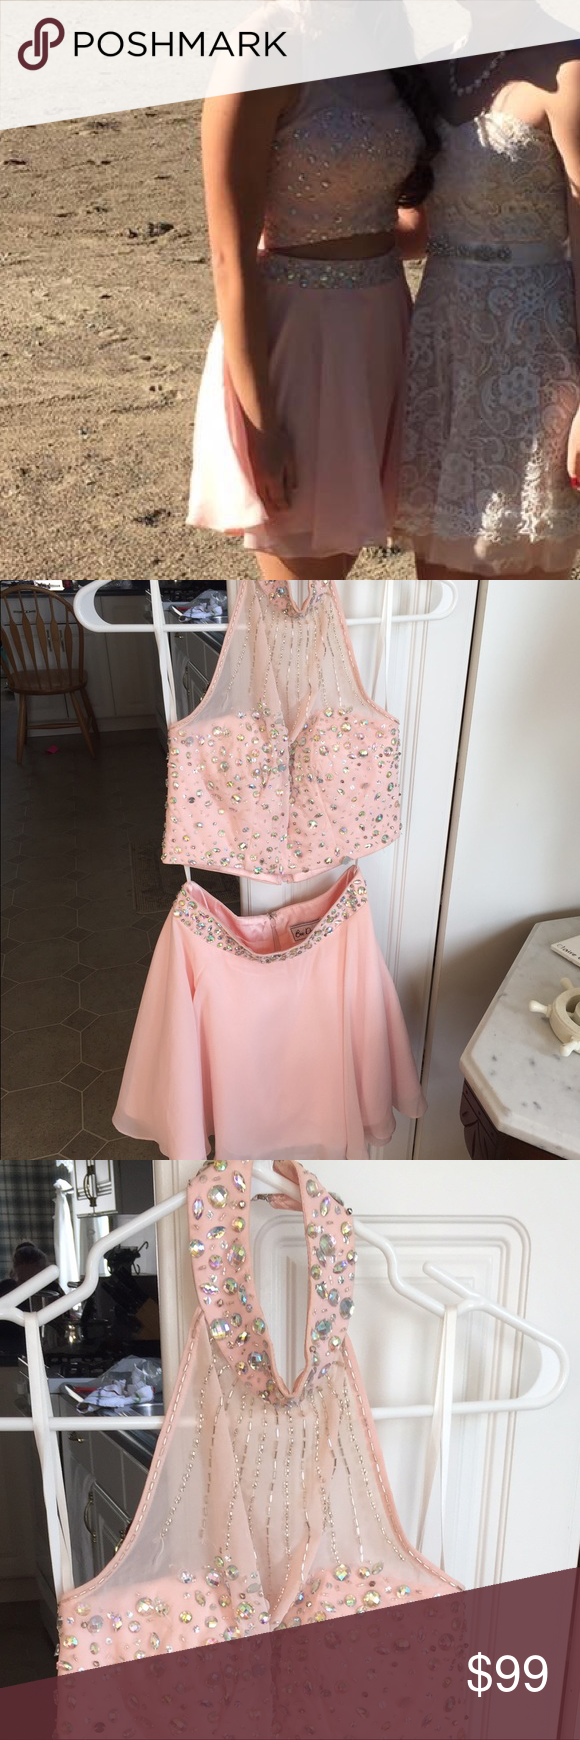 Baby Pink Peach 2 Piece Dress Baby Pink Peach Dress Sparkly Two Piece I Bought This Dress From Windsor Store In The Great L Piece Dress Dresses Clothes Design [ 1740 x 580 Pixel ]